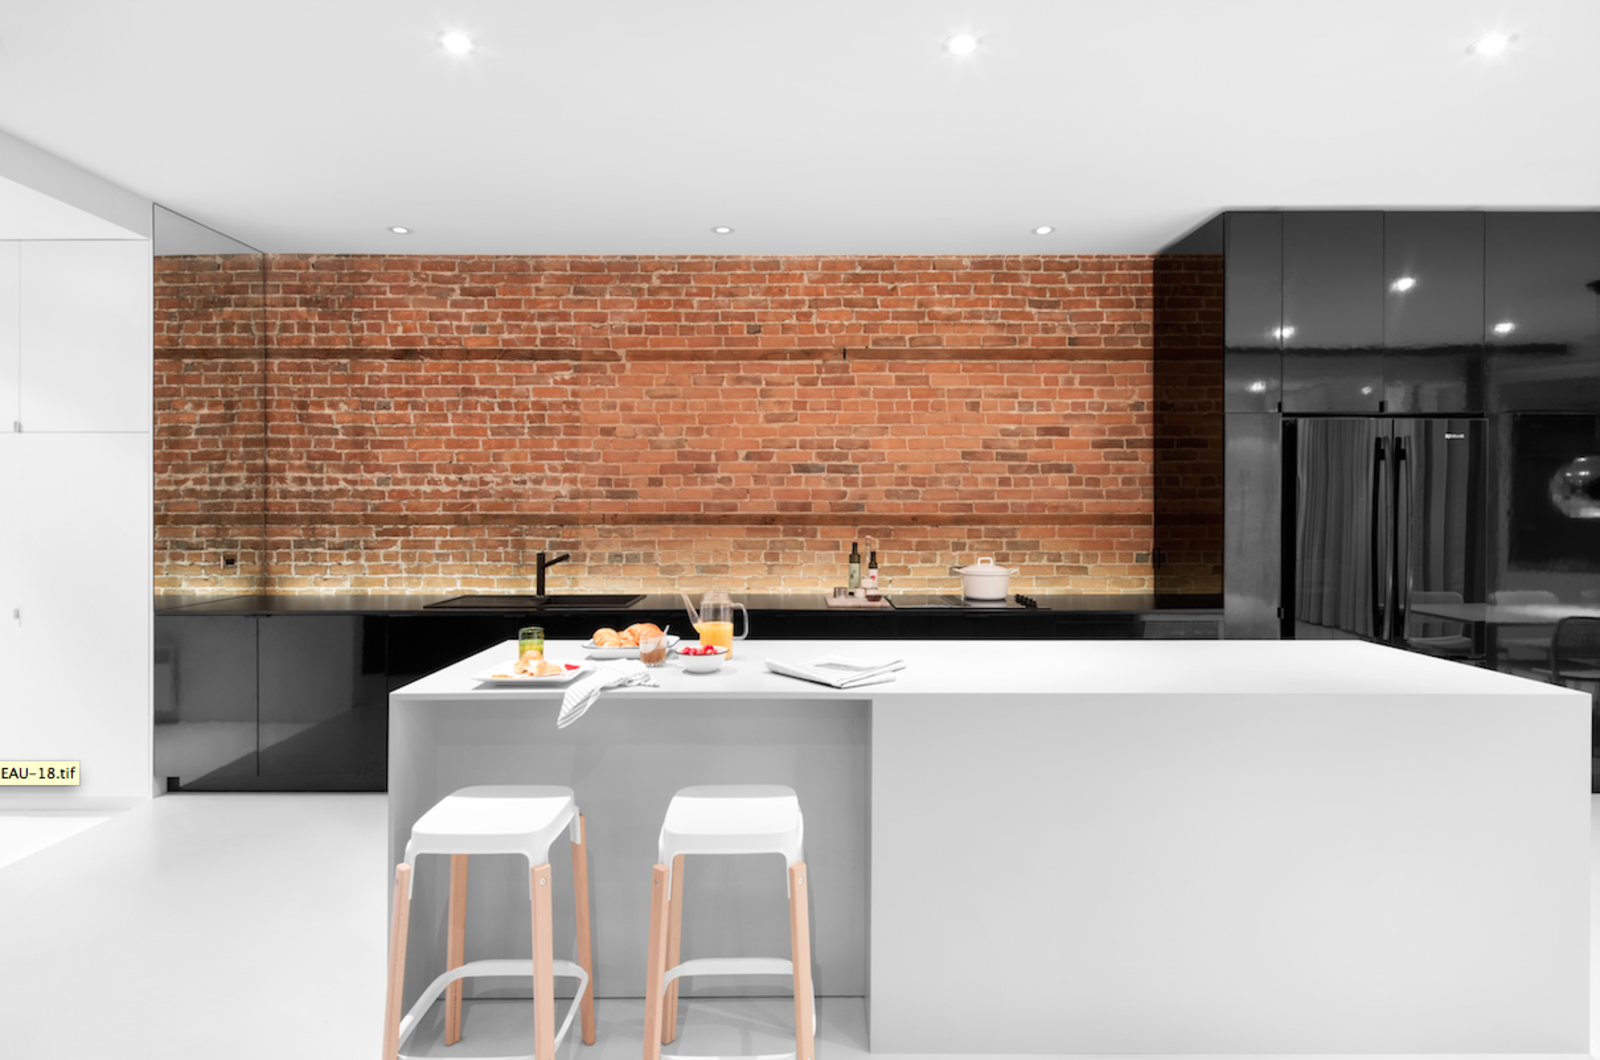 Minimal kitchens collection of 5 photos by allie weiss dwell for Kitchen units made of bricks